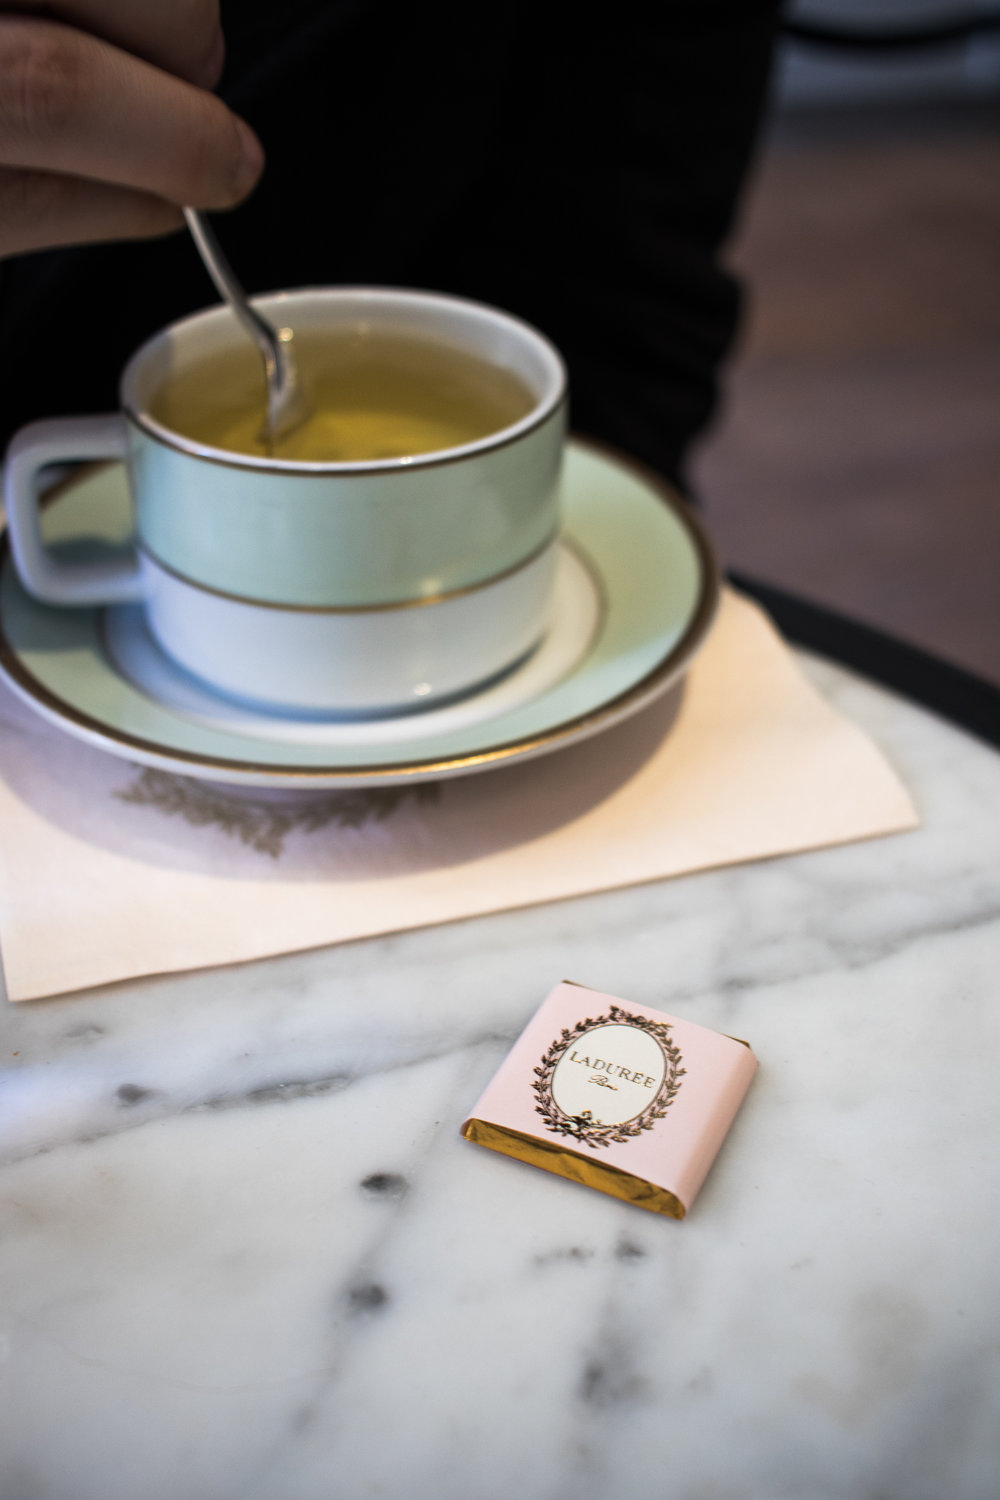 top-instagrammable-spots-in-nyc-melrose-moda-melrose-elise-laduree-soho